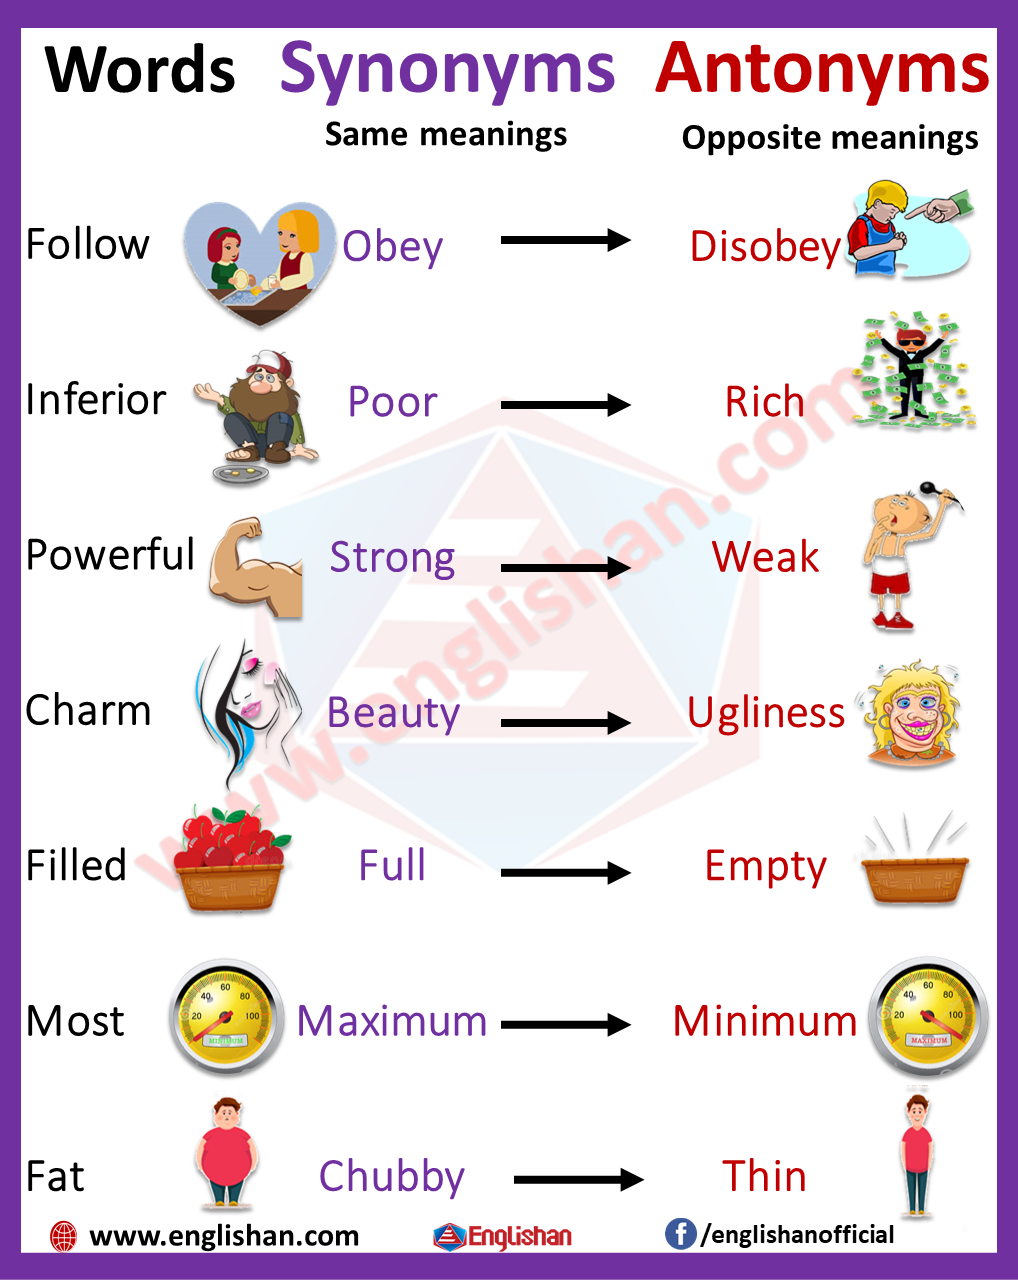 100 Examples of Synonyms and Antonyms